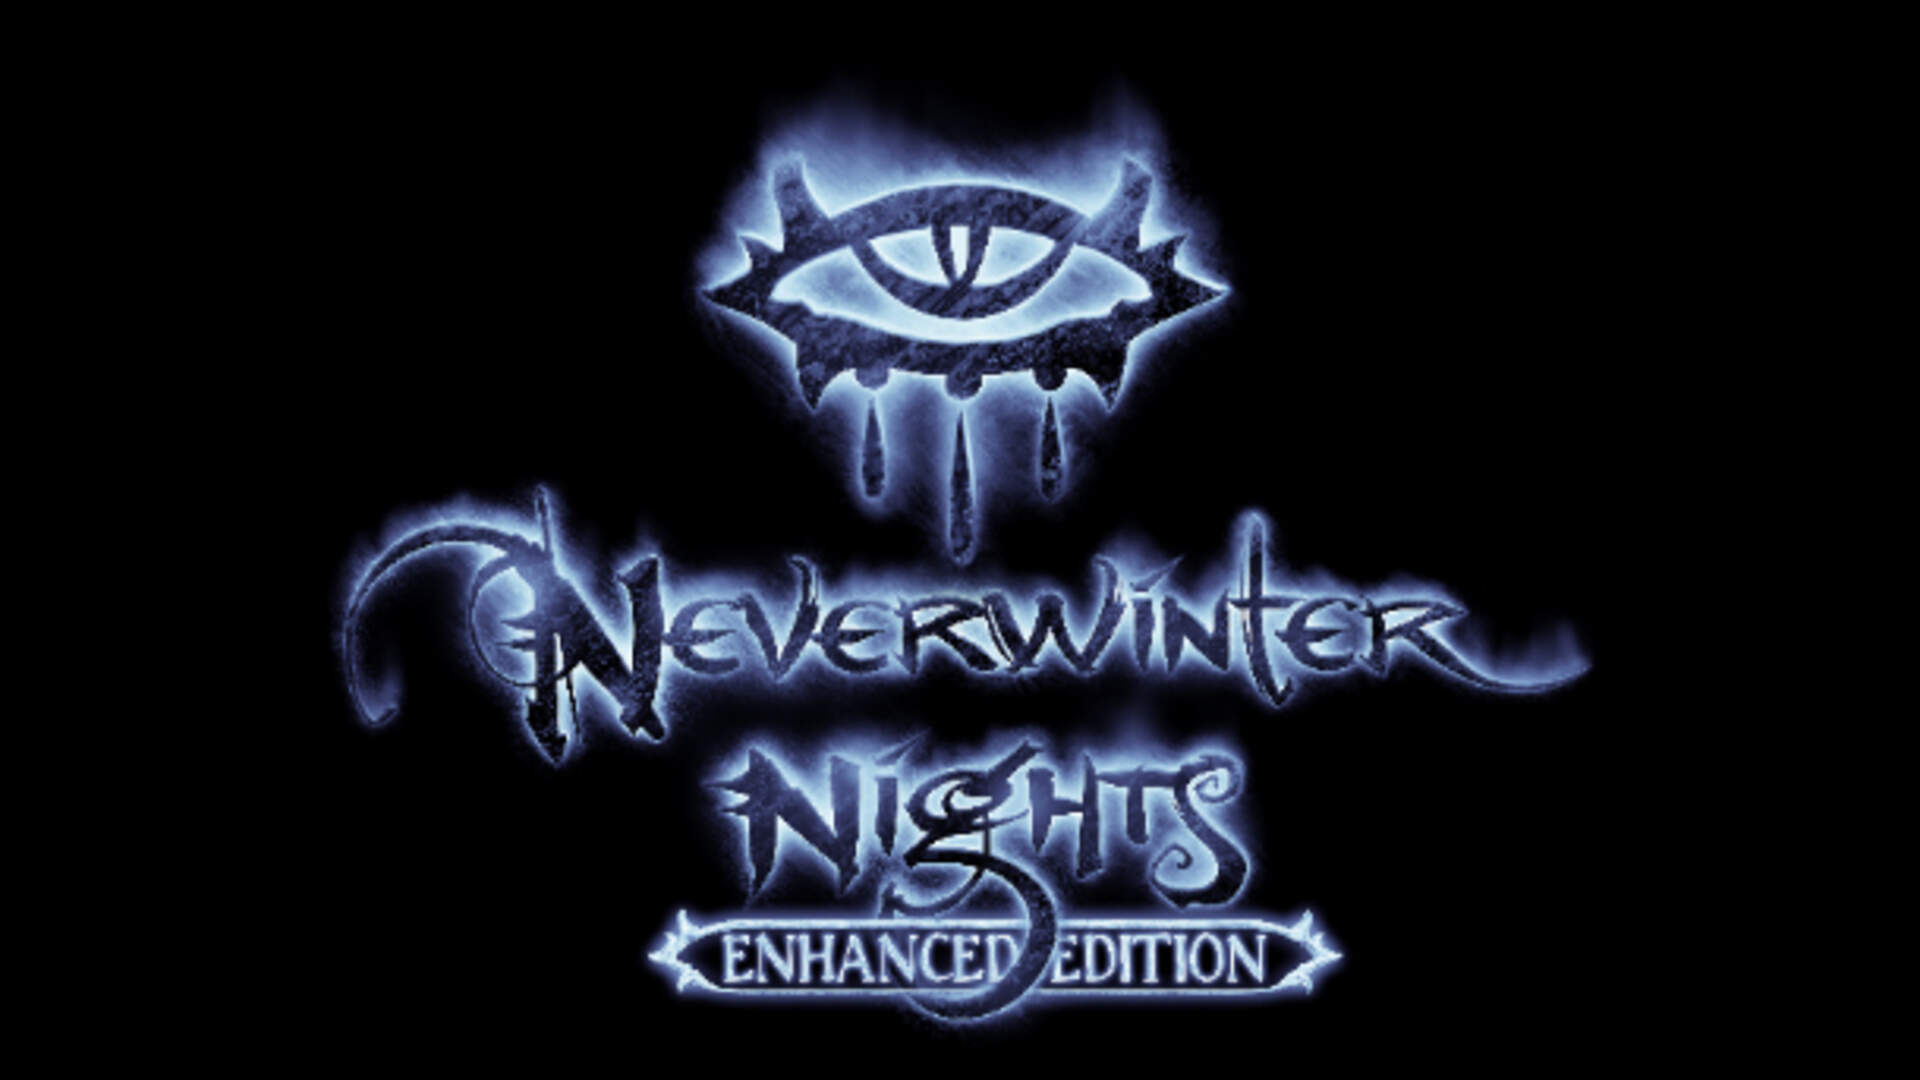 Neverwinter Nights: Enhanced Edition Is Beamdog's Next Project